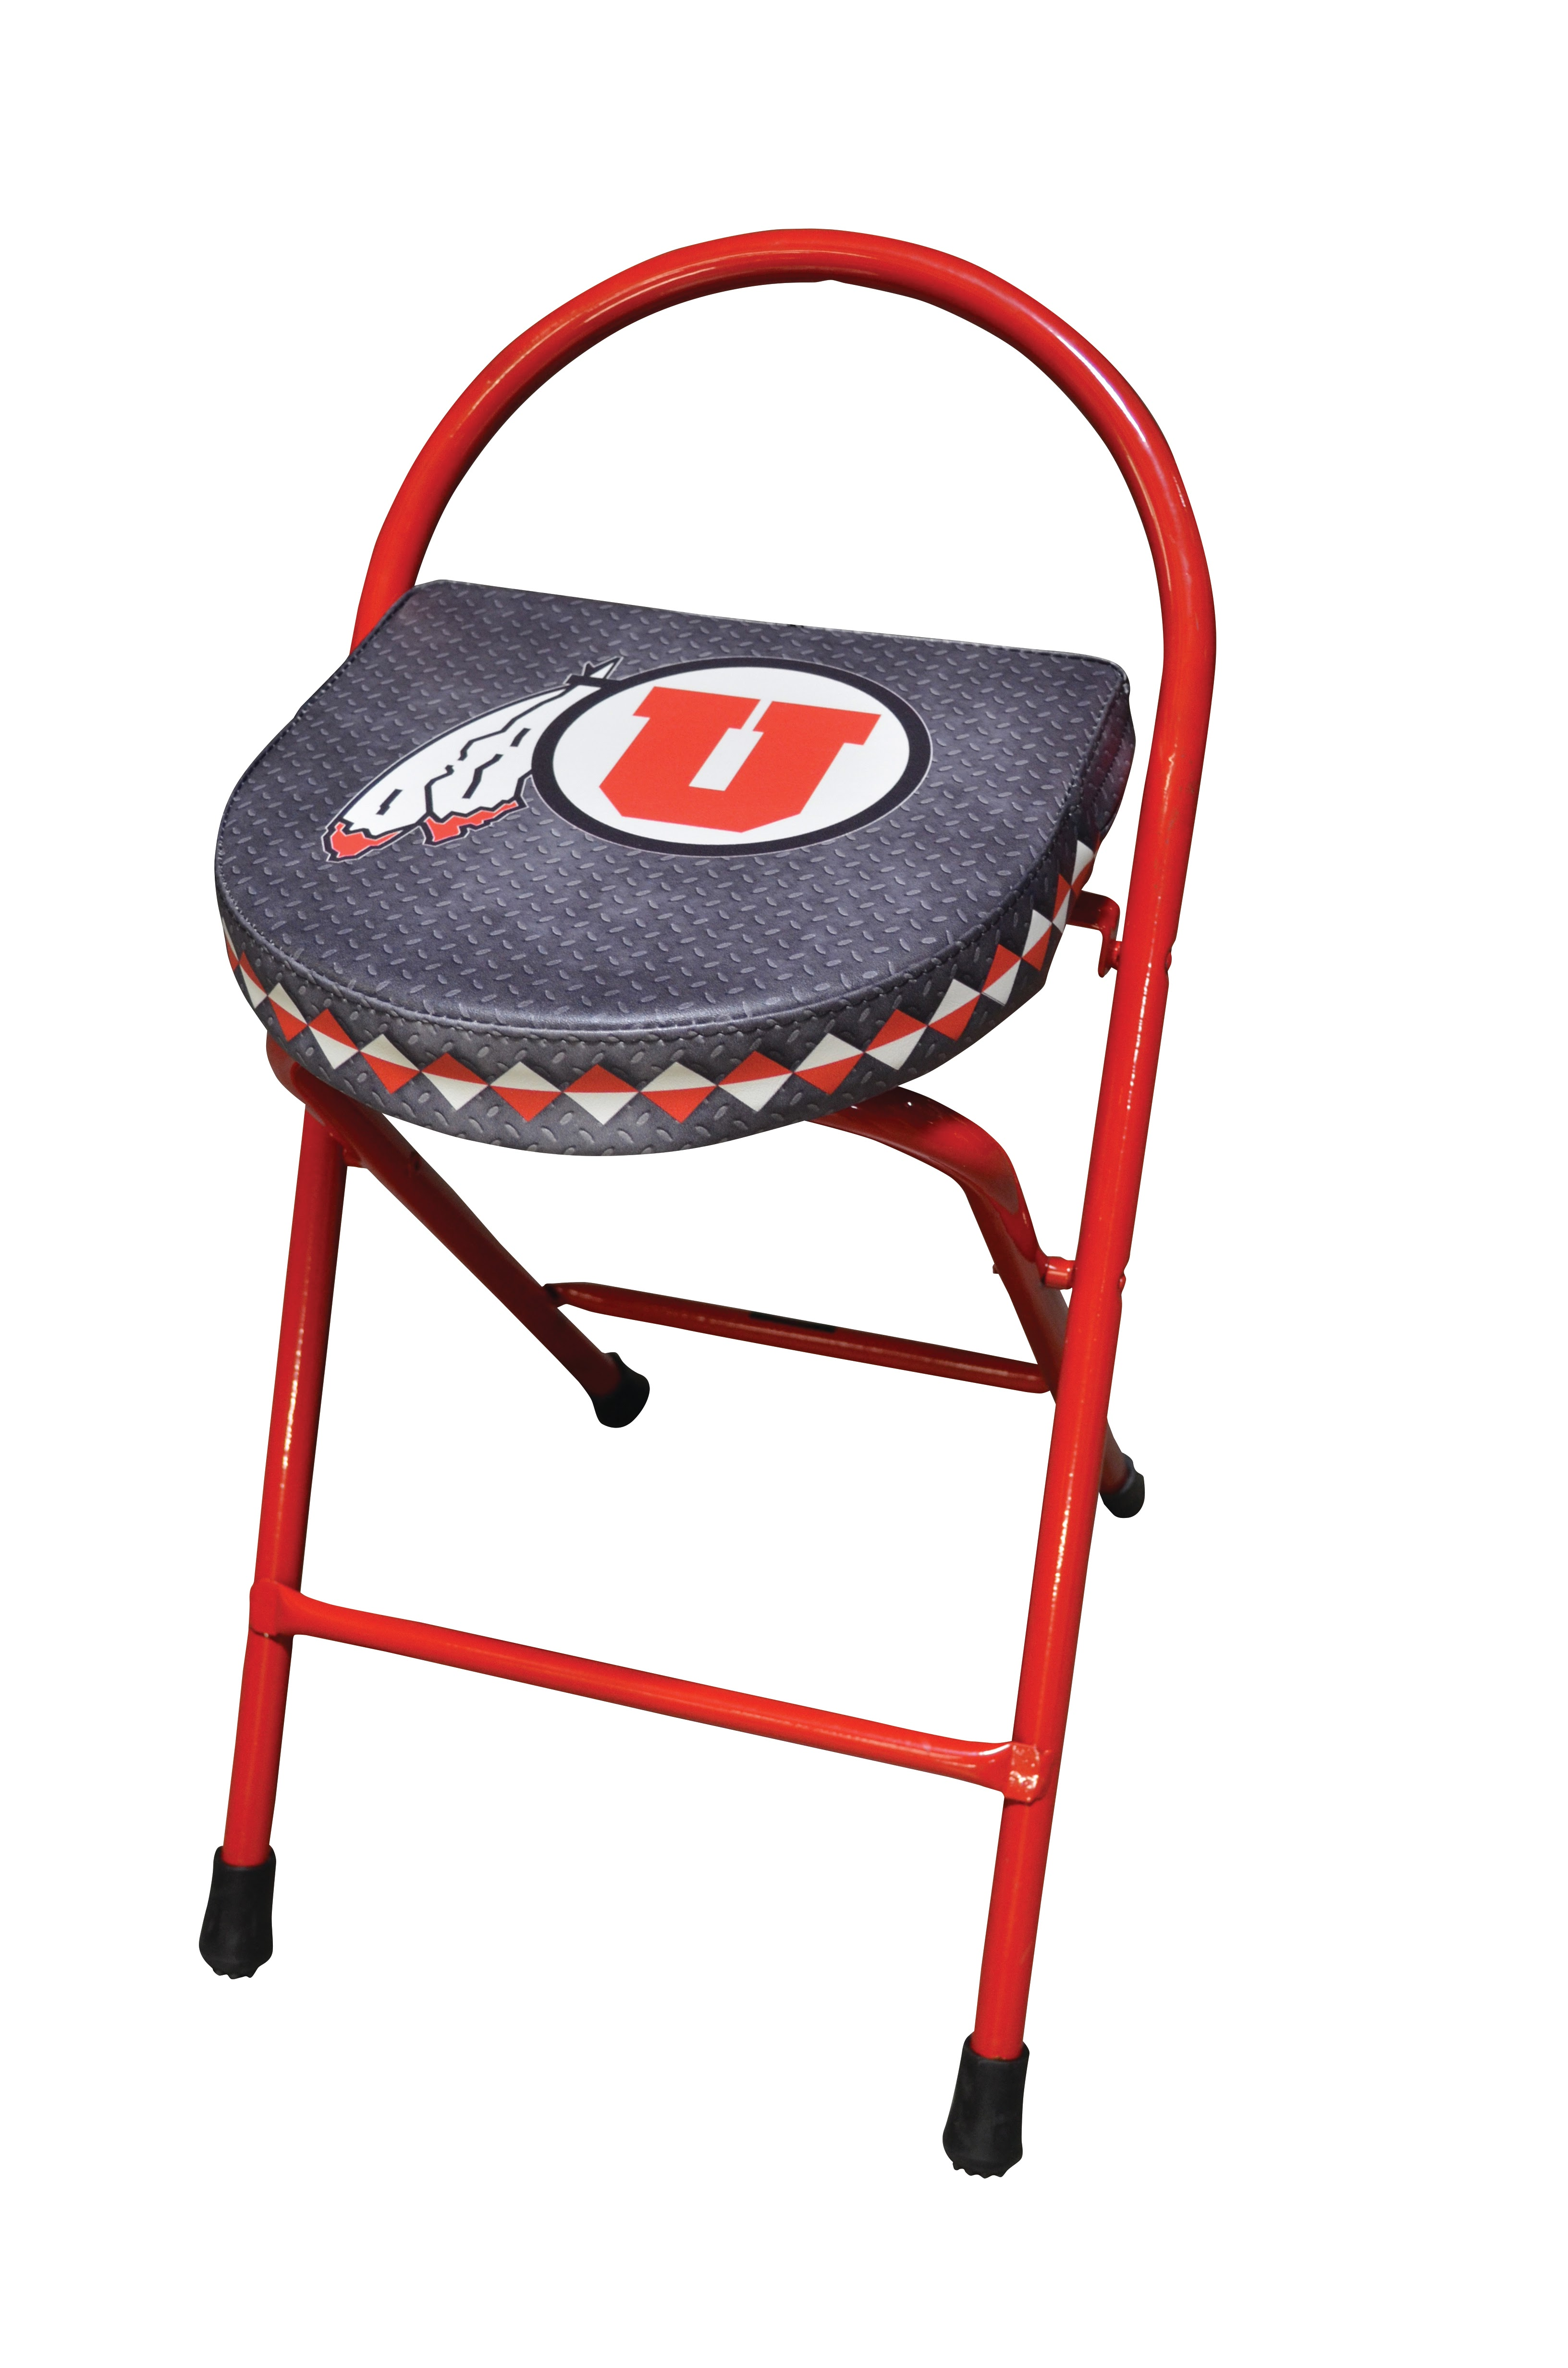 Basketball Chairs Sideline Chairs Dgs Sports